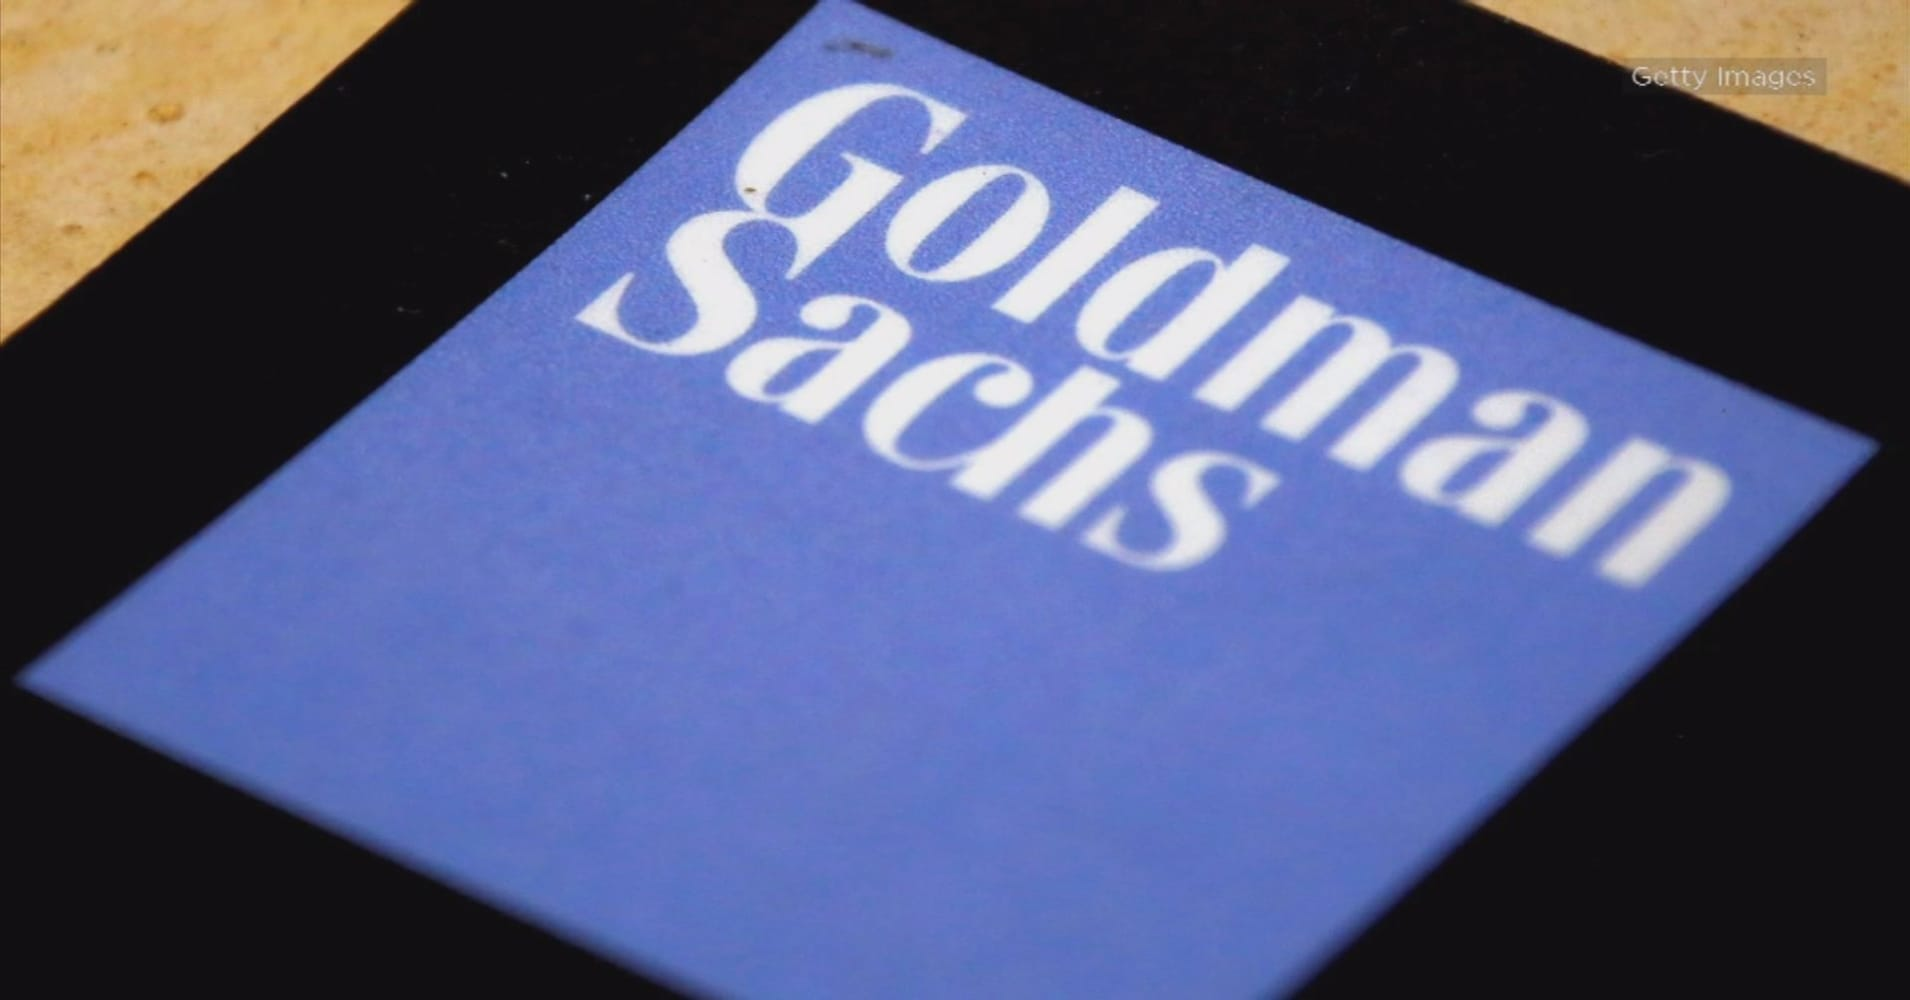 Goldman Sachs Exploring Bitcoin Trading Operation Report Says